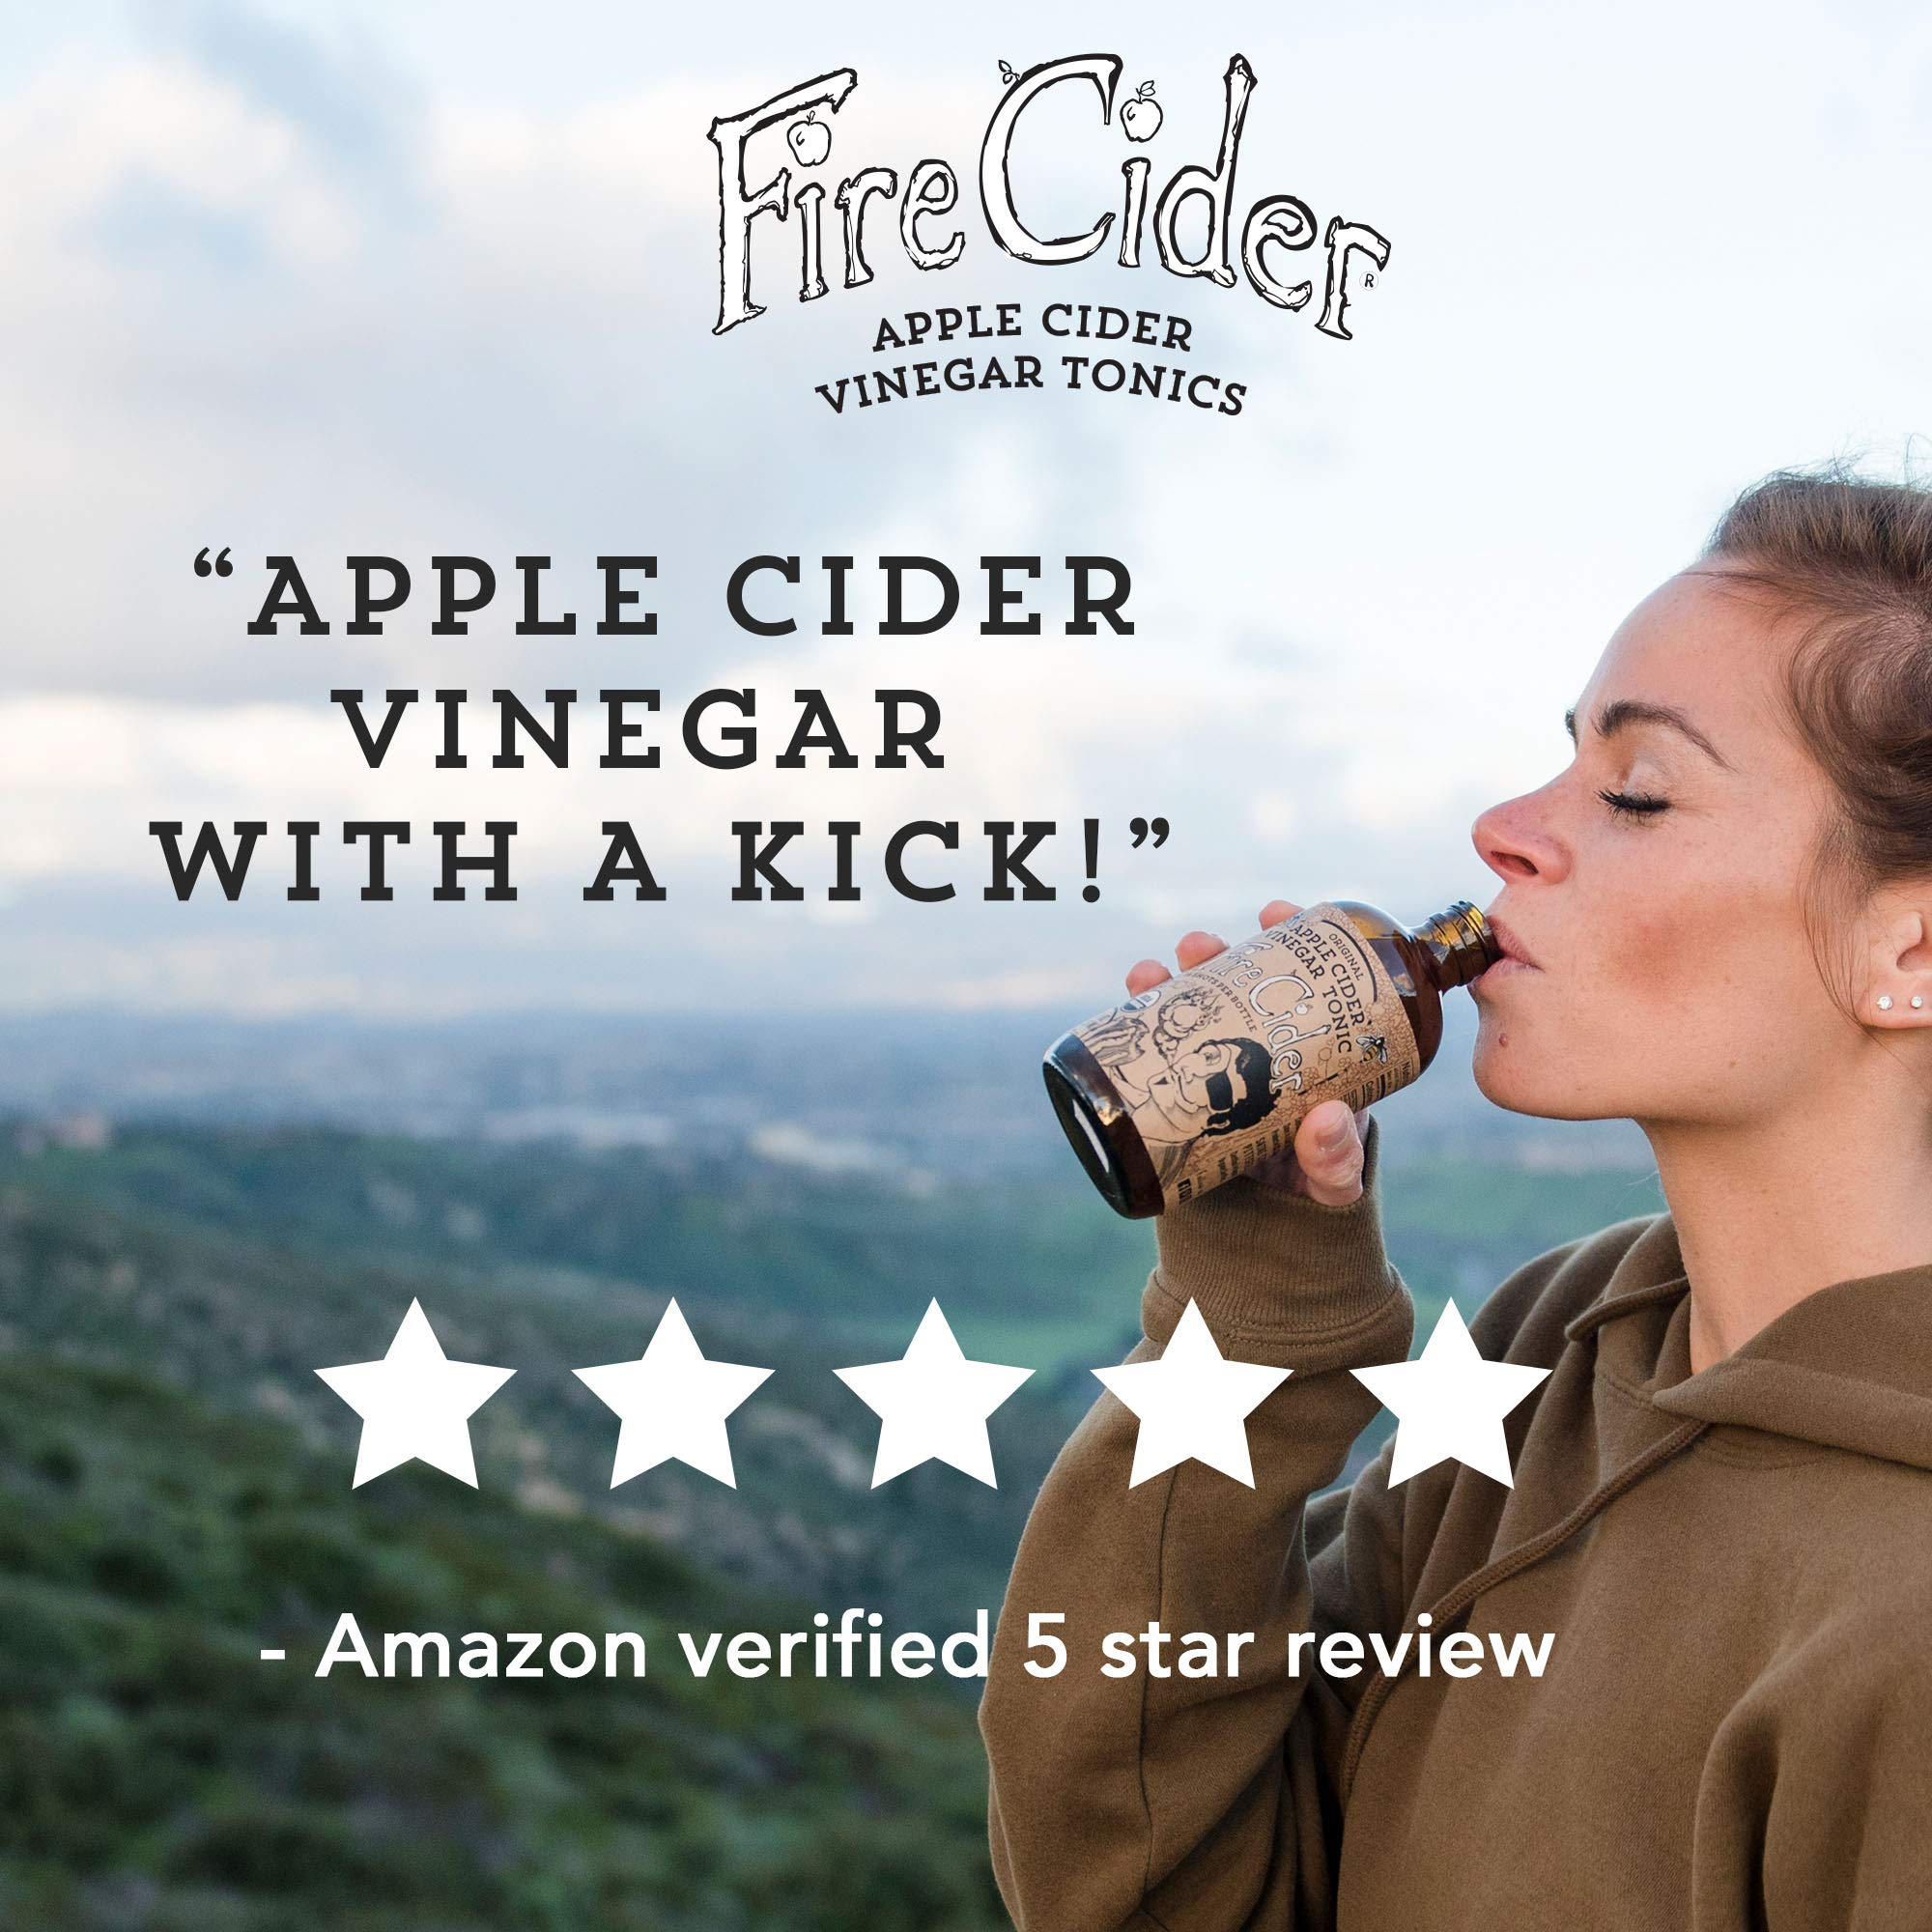 Fire Cider, Apple Cider Vinegar Tonic with Honey, Original Flavor, Pure & Raw, All Certified Organic Ingredients, Not Heat Processed, Not Pasteurized, Paleo, Keto, 128 Shots, 64 oz. by FIRE CIDER (Image #6)